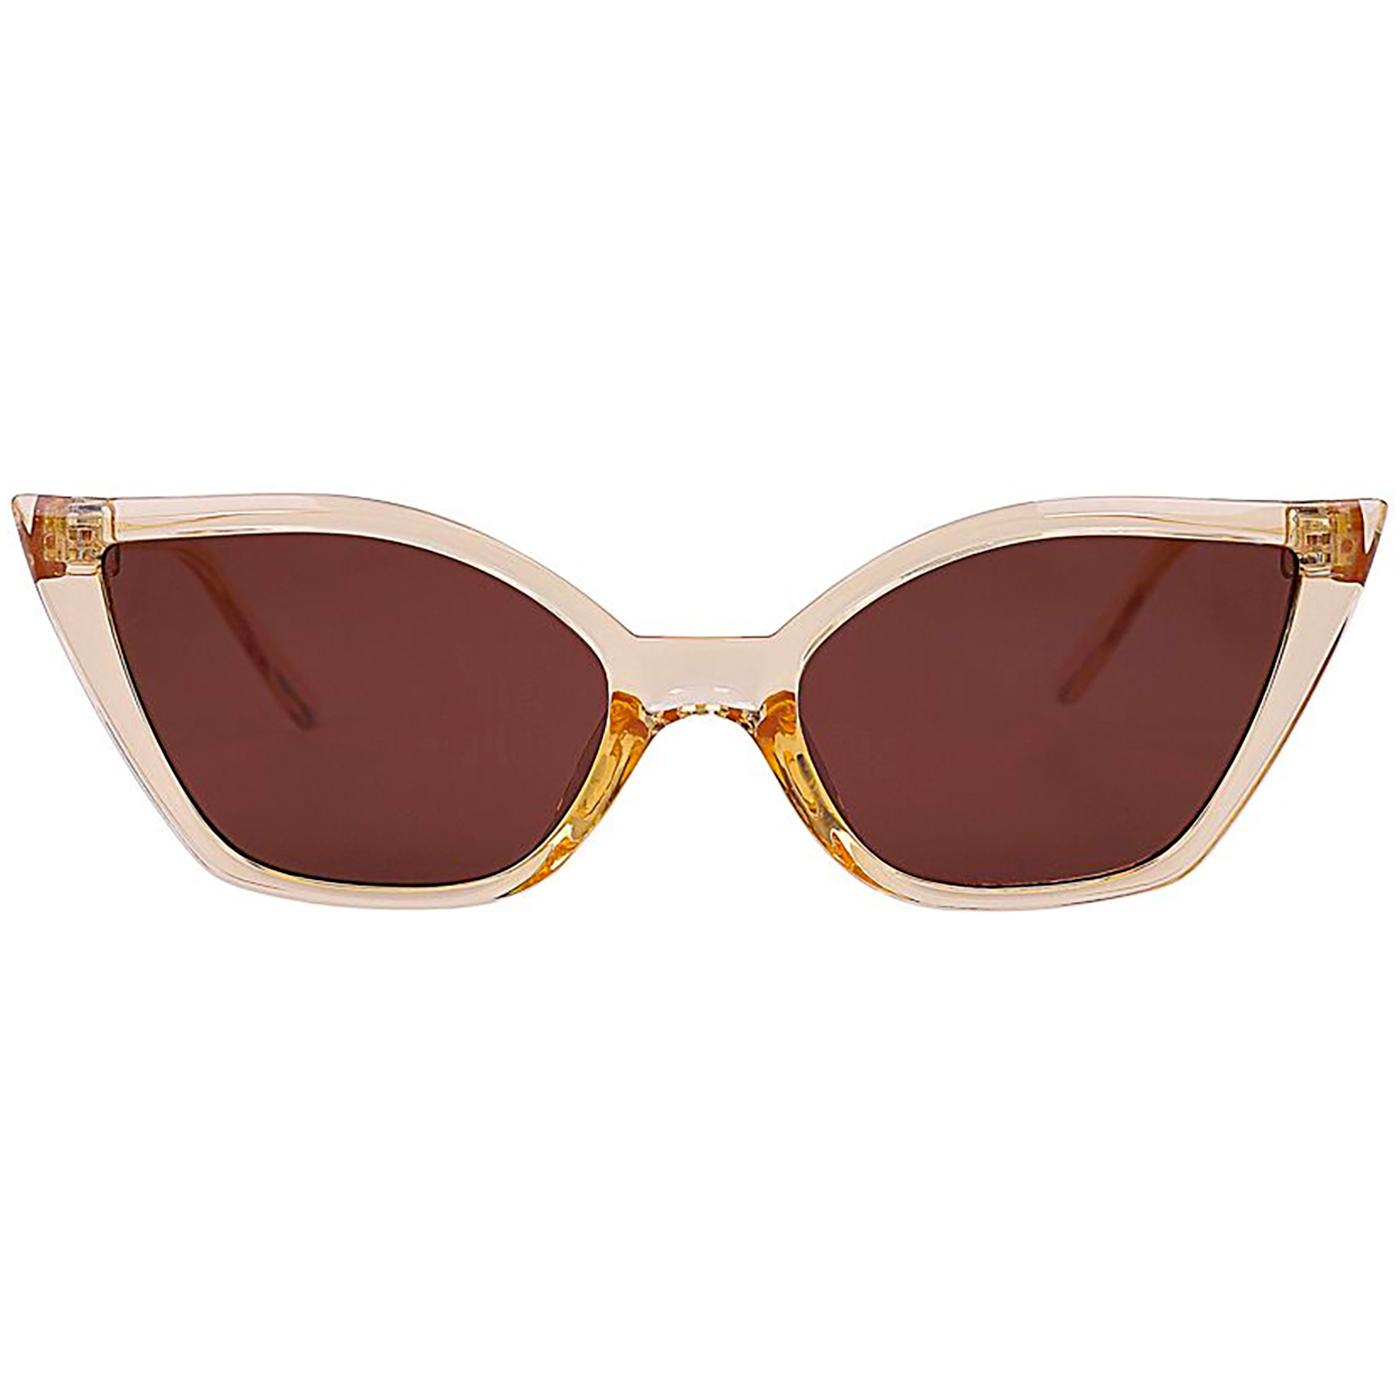 Audrey COLLECTIF Vintage 50s Catseye Sunglasses A